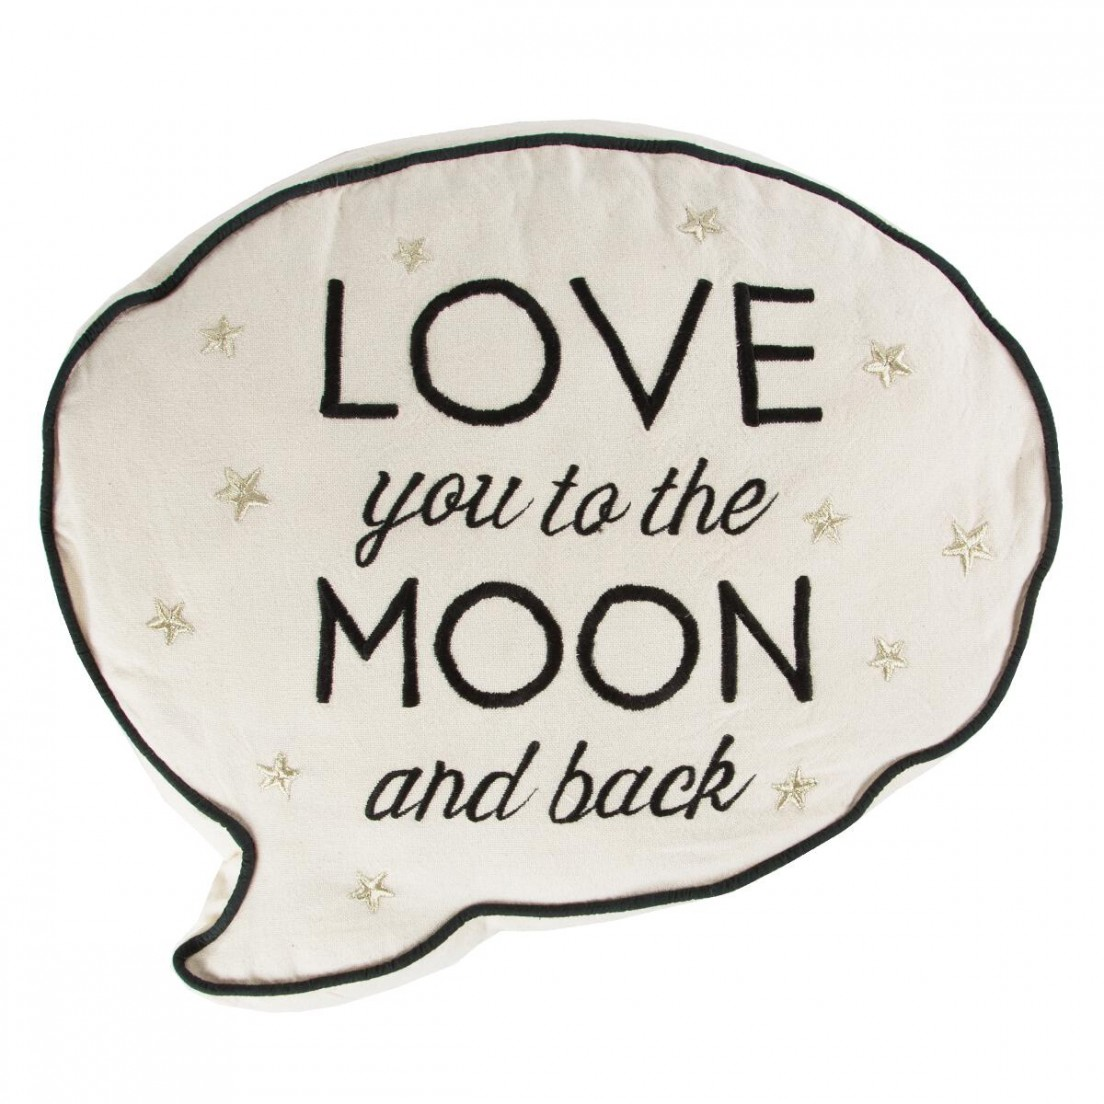 Kussen Love You To The Moon And Back Cadeautjesnl